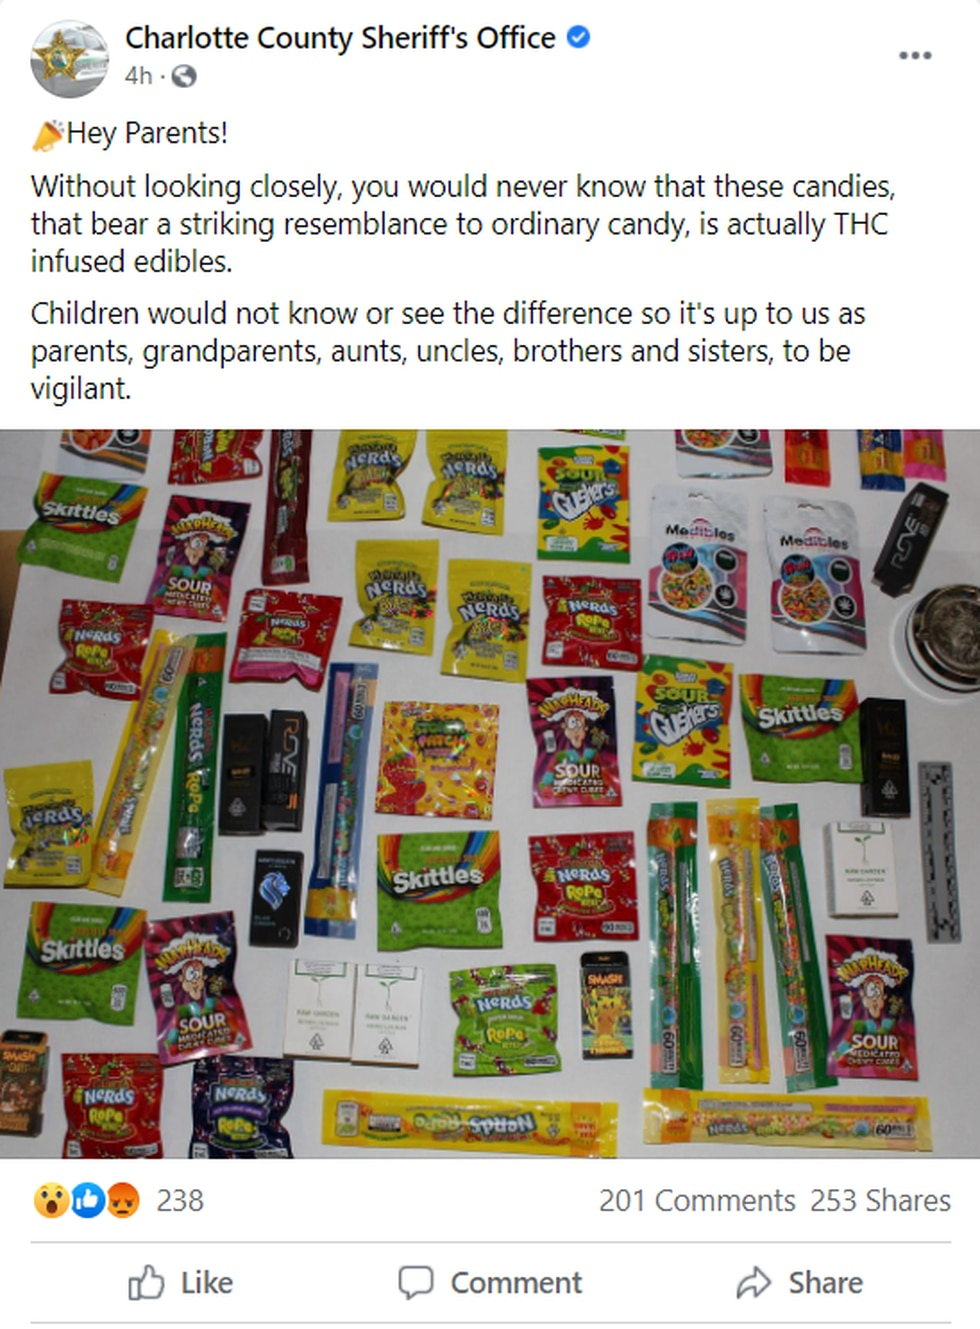 Deputies in Florida are warning of drug-laced candy that looks like Skittles, Nerds or WarHeads.